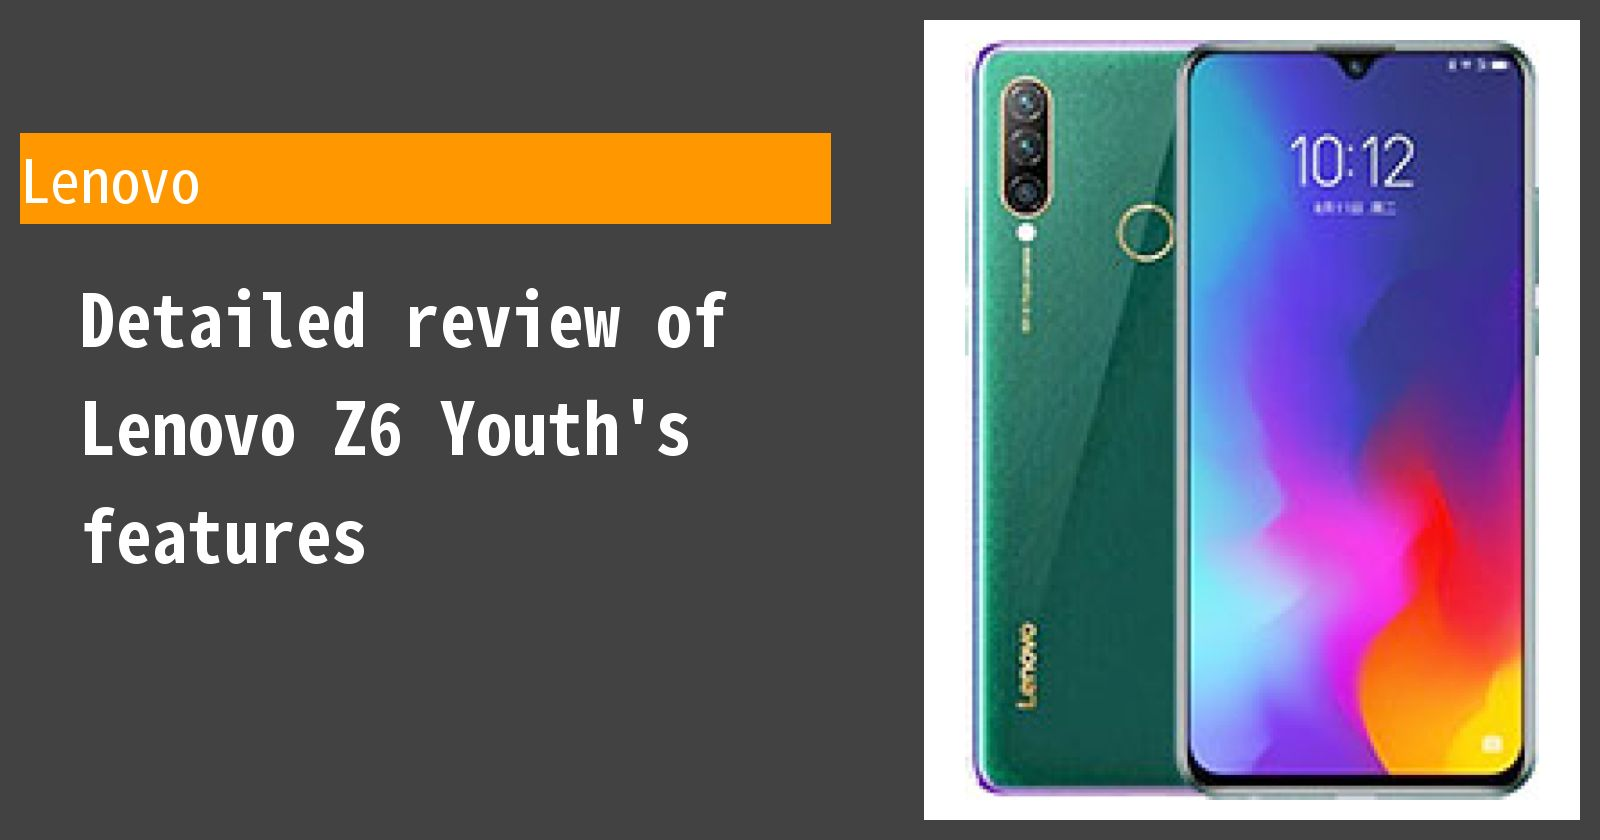 Detailed review of Lenovo Z6 Youth's features